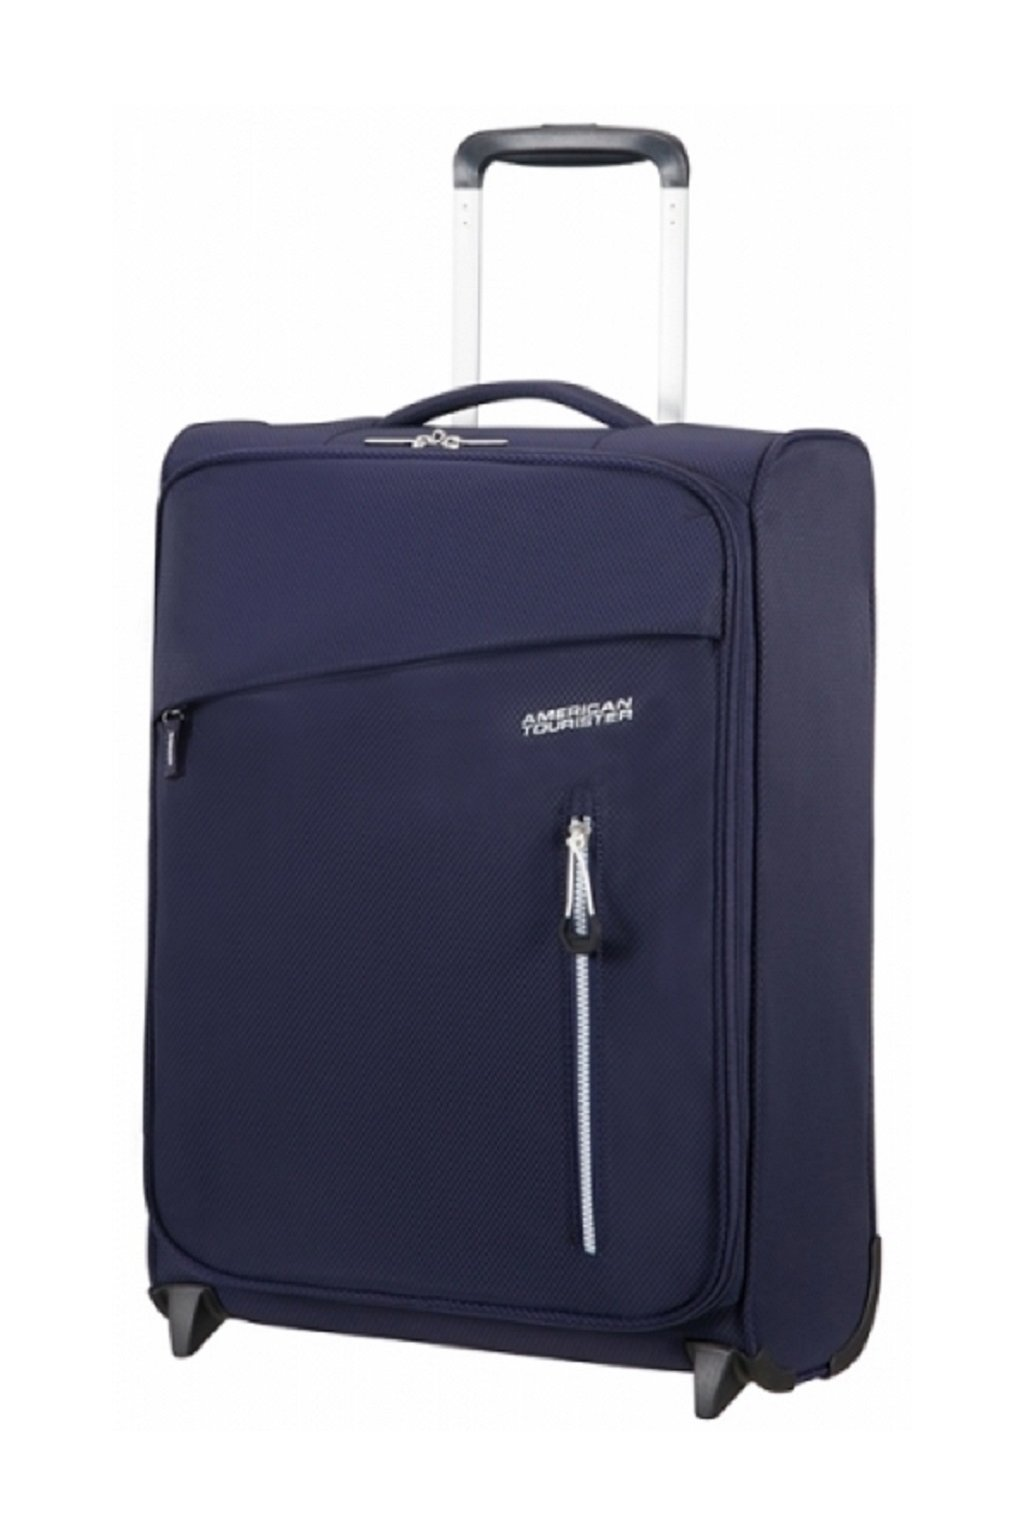 kufrland americantourister litewing upright 55 blue (1)